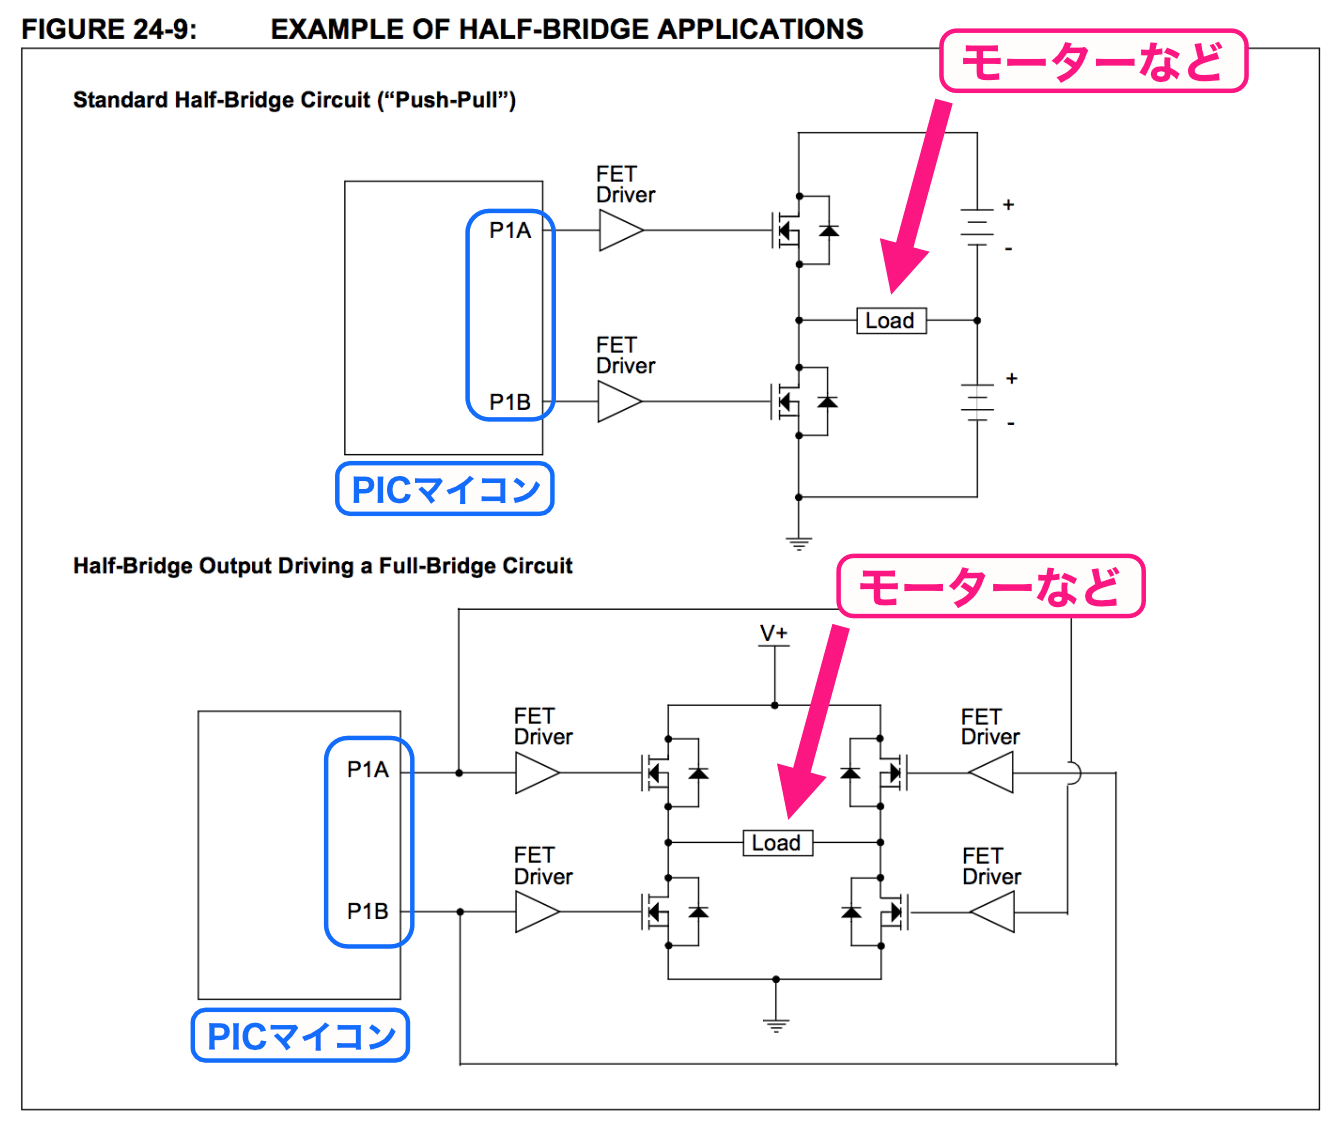 Pic app 4 half bridge schematic